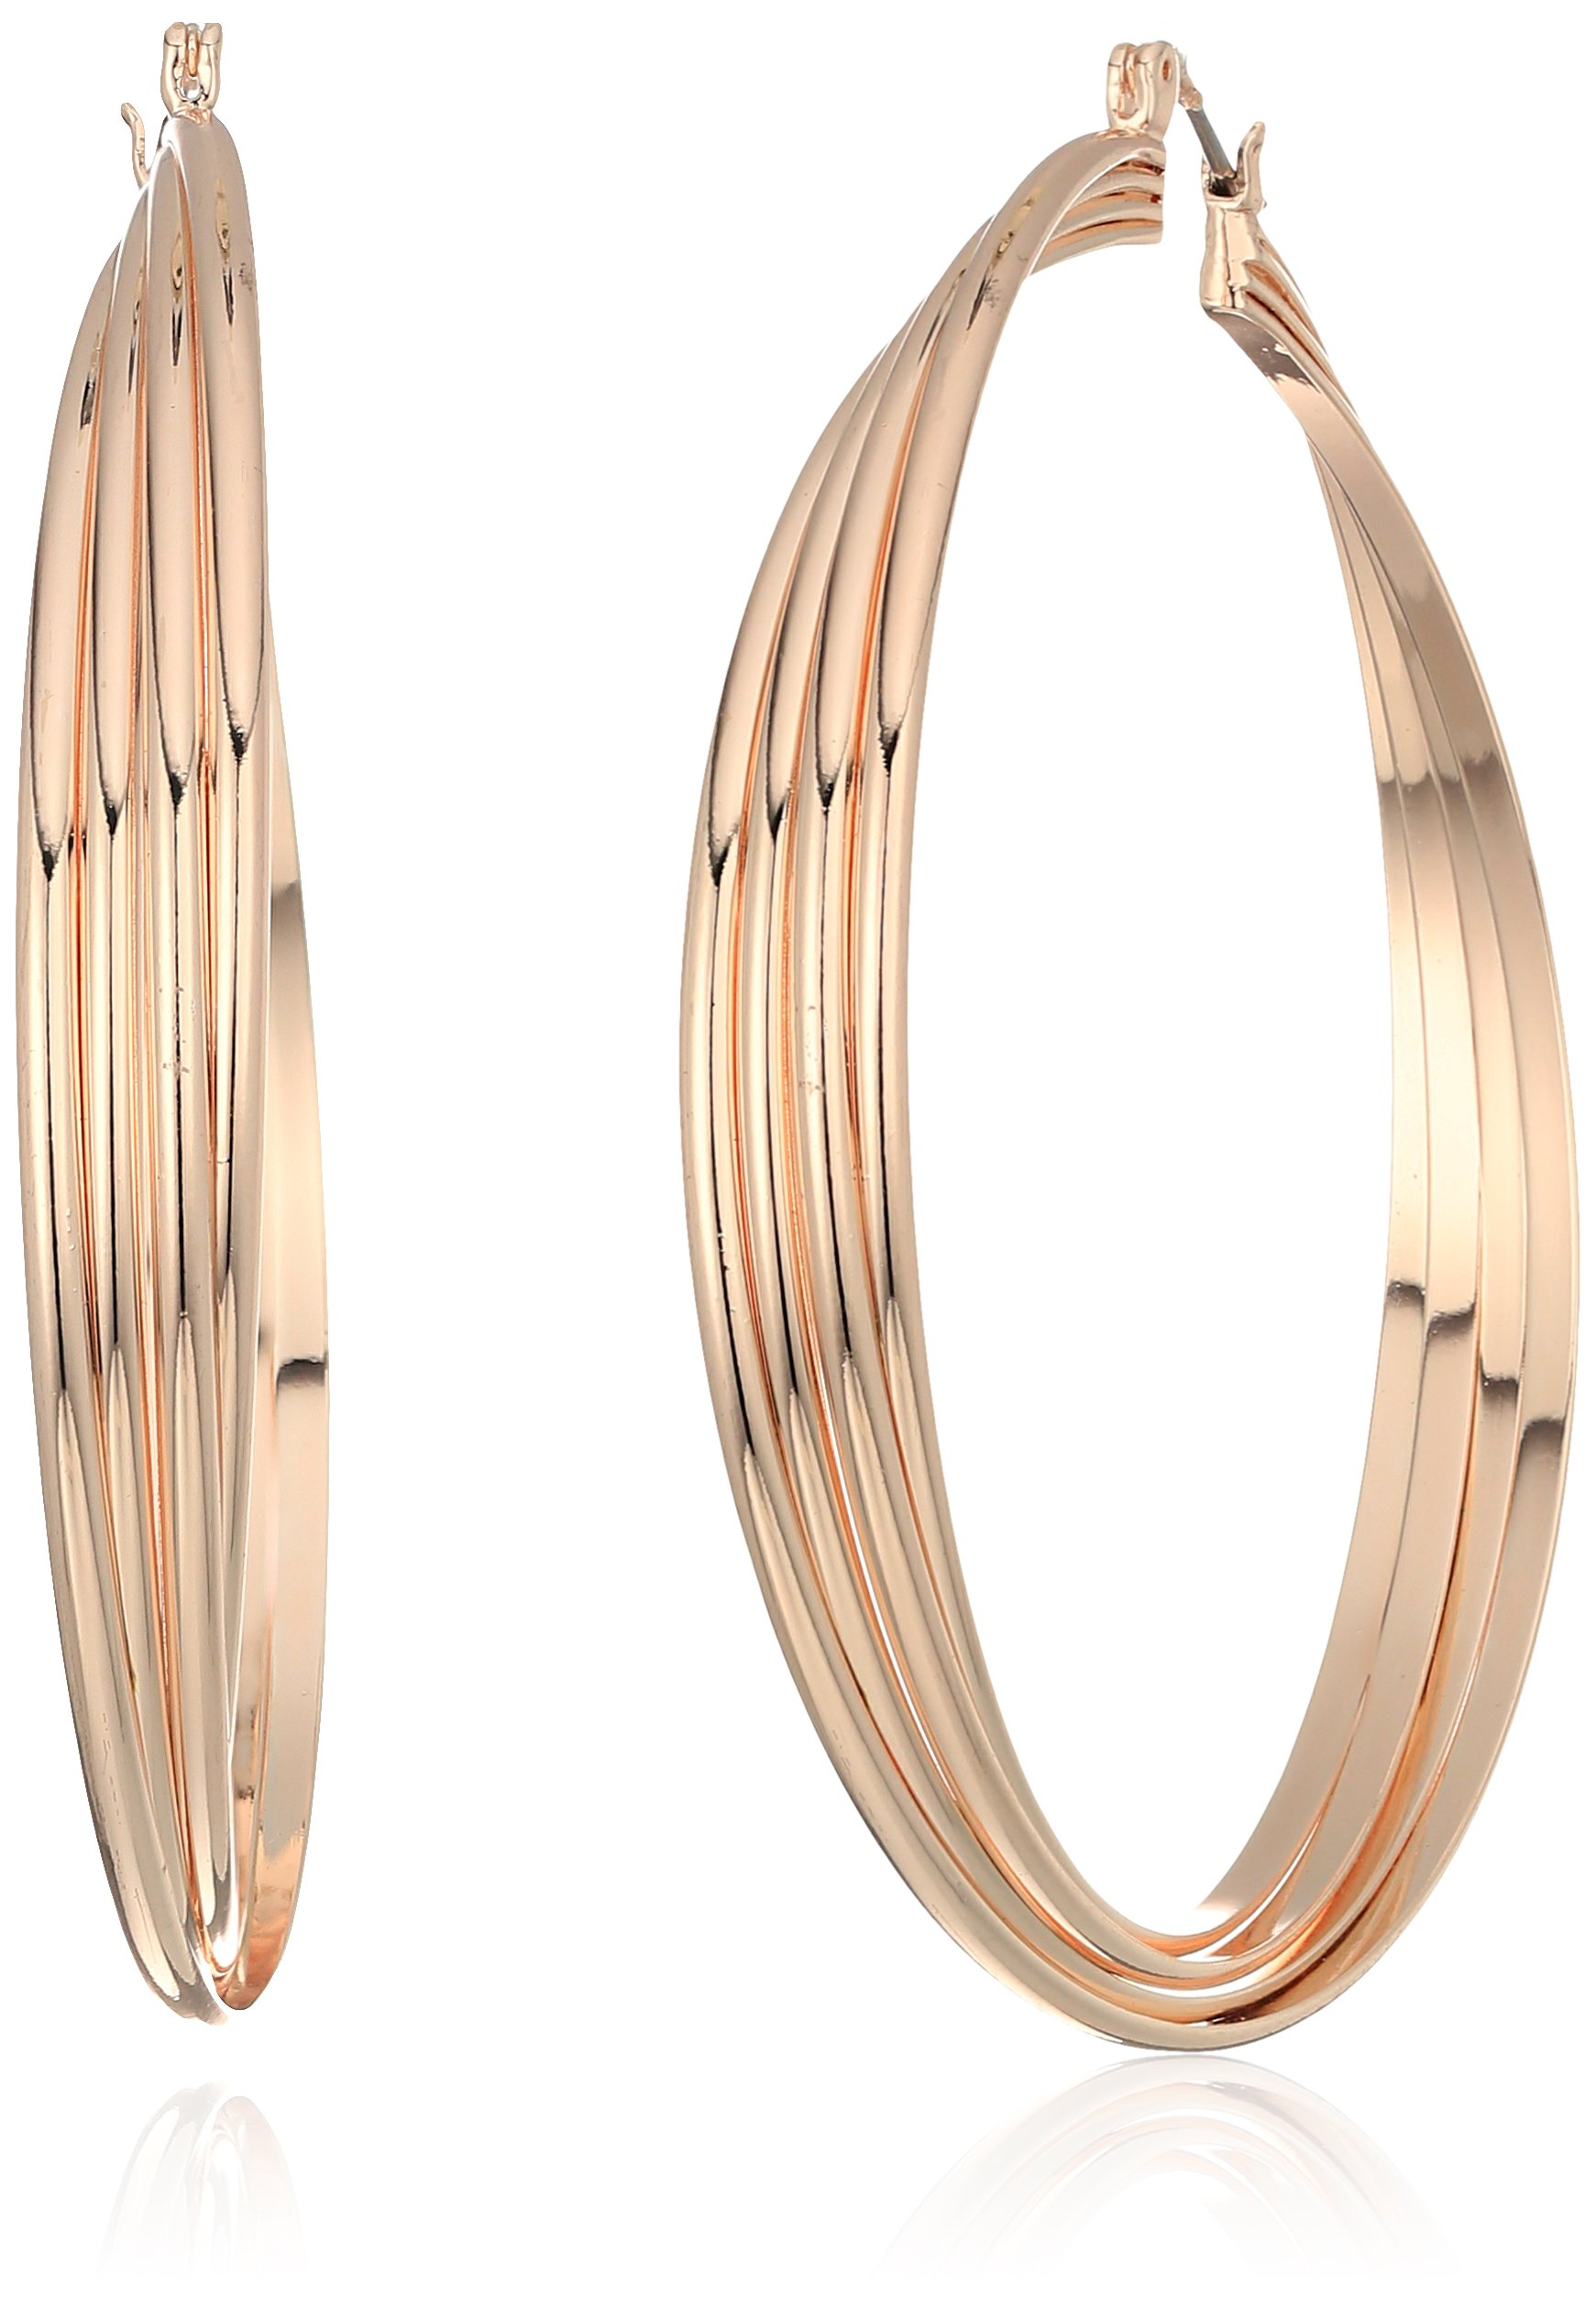 Kenneth Cole New York Womens Extra Large Trinity Rings Rose Gold Twisted Hoop Earrings